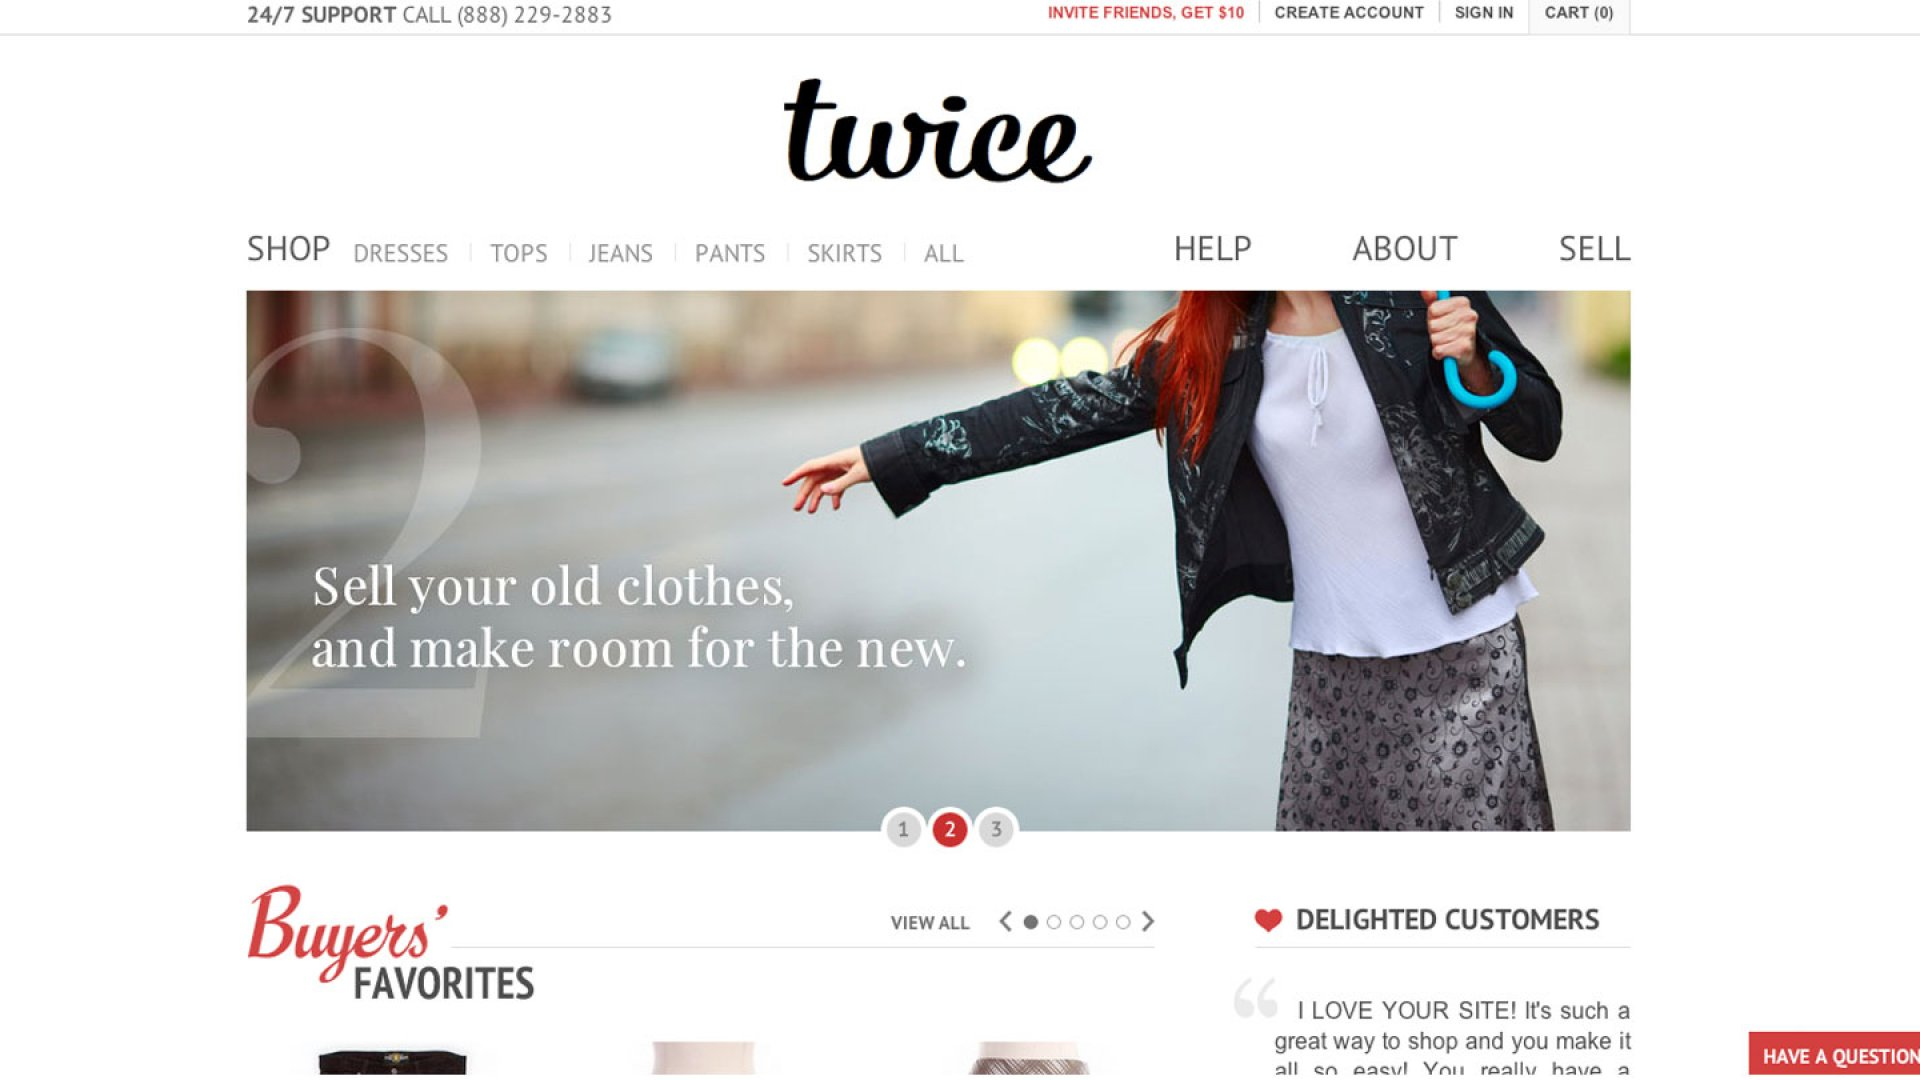 EBay Buys Secondhand Clothing Startup Twice